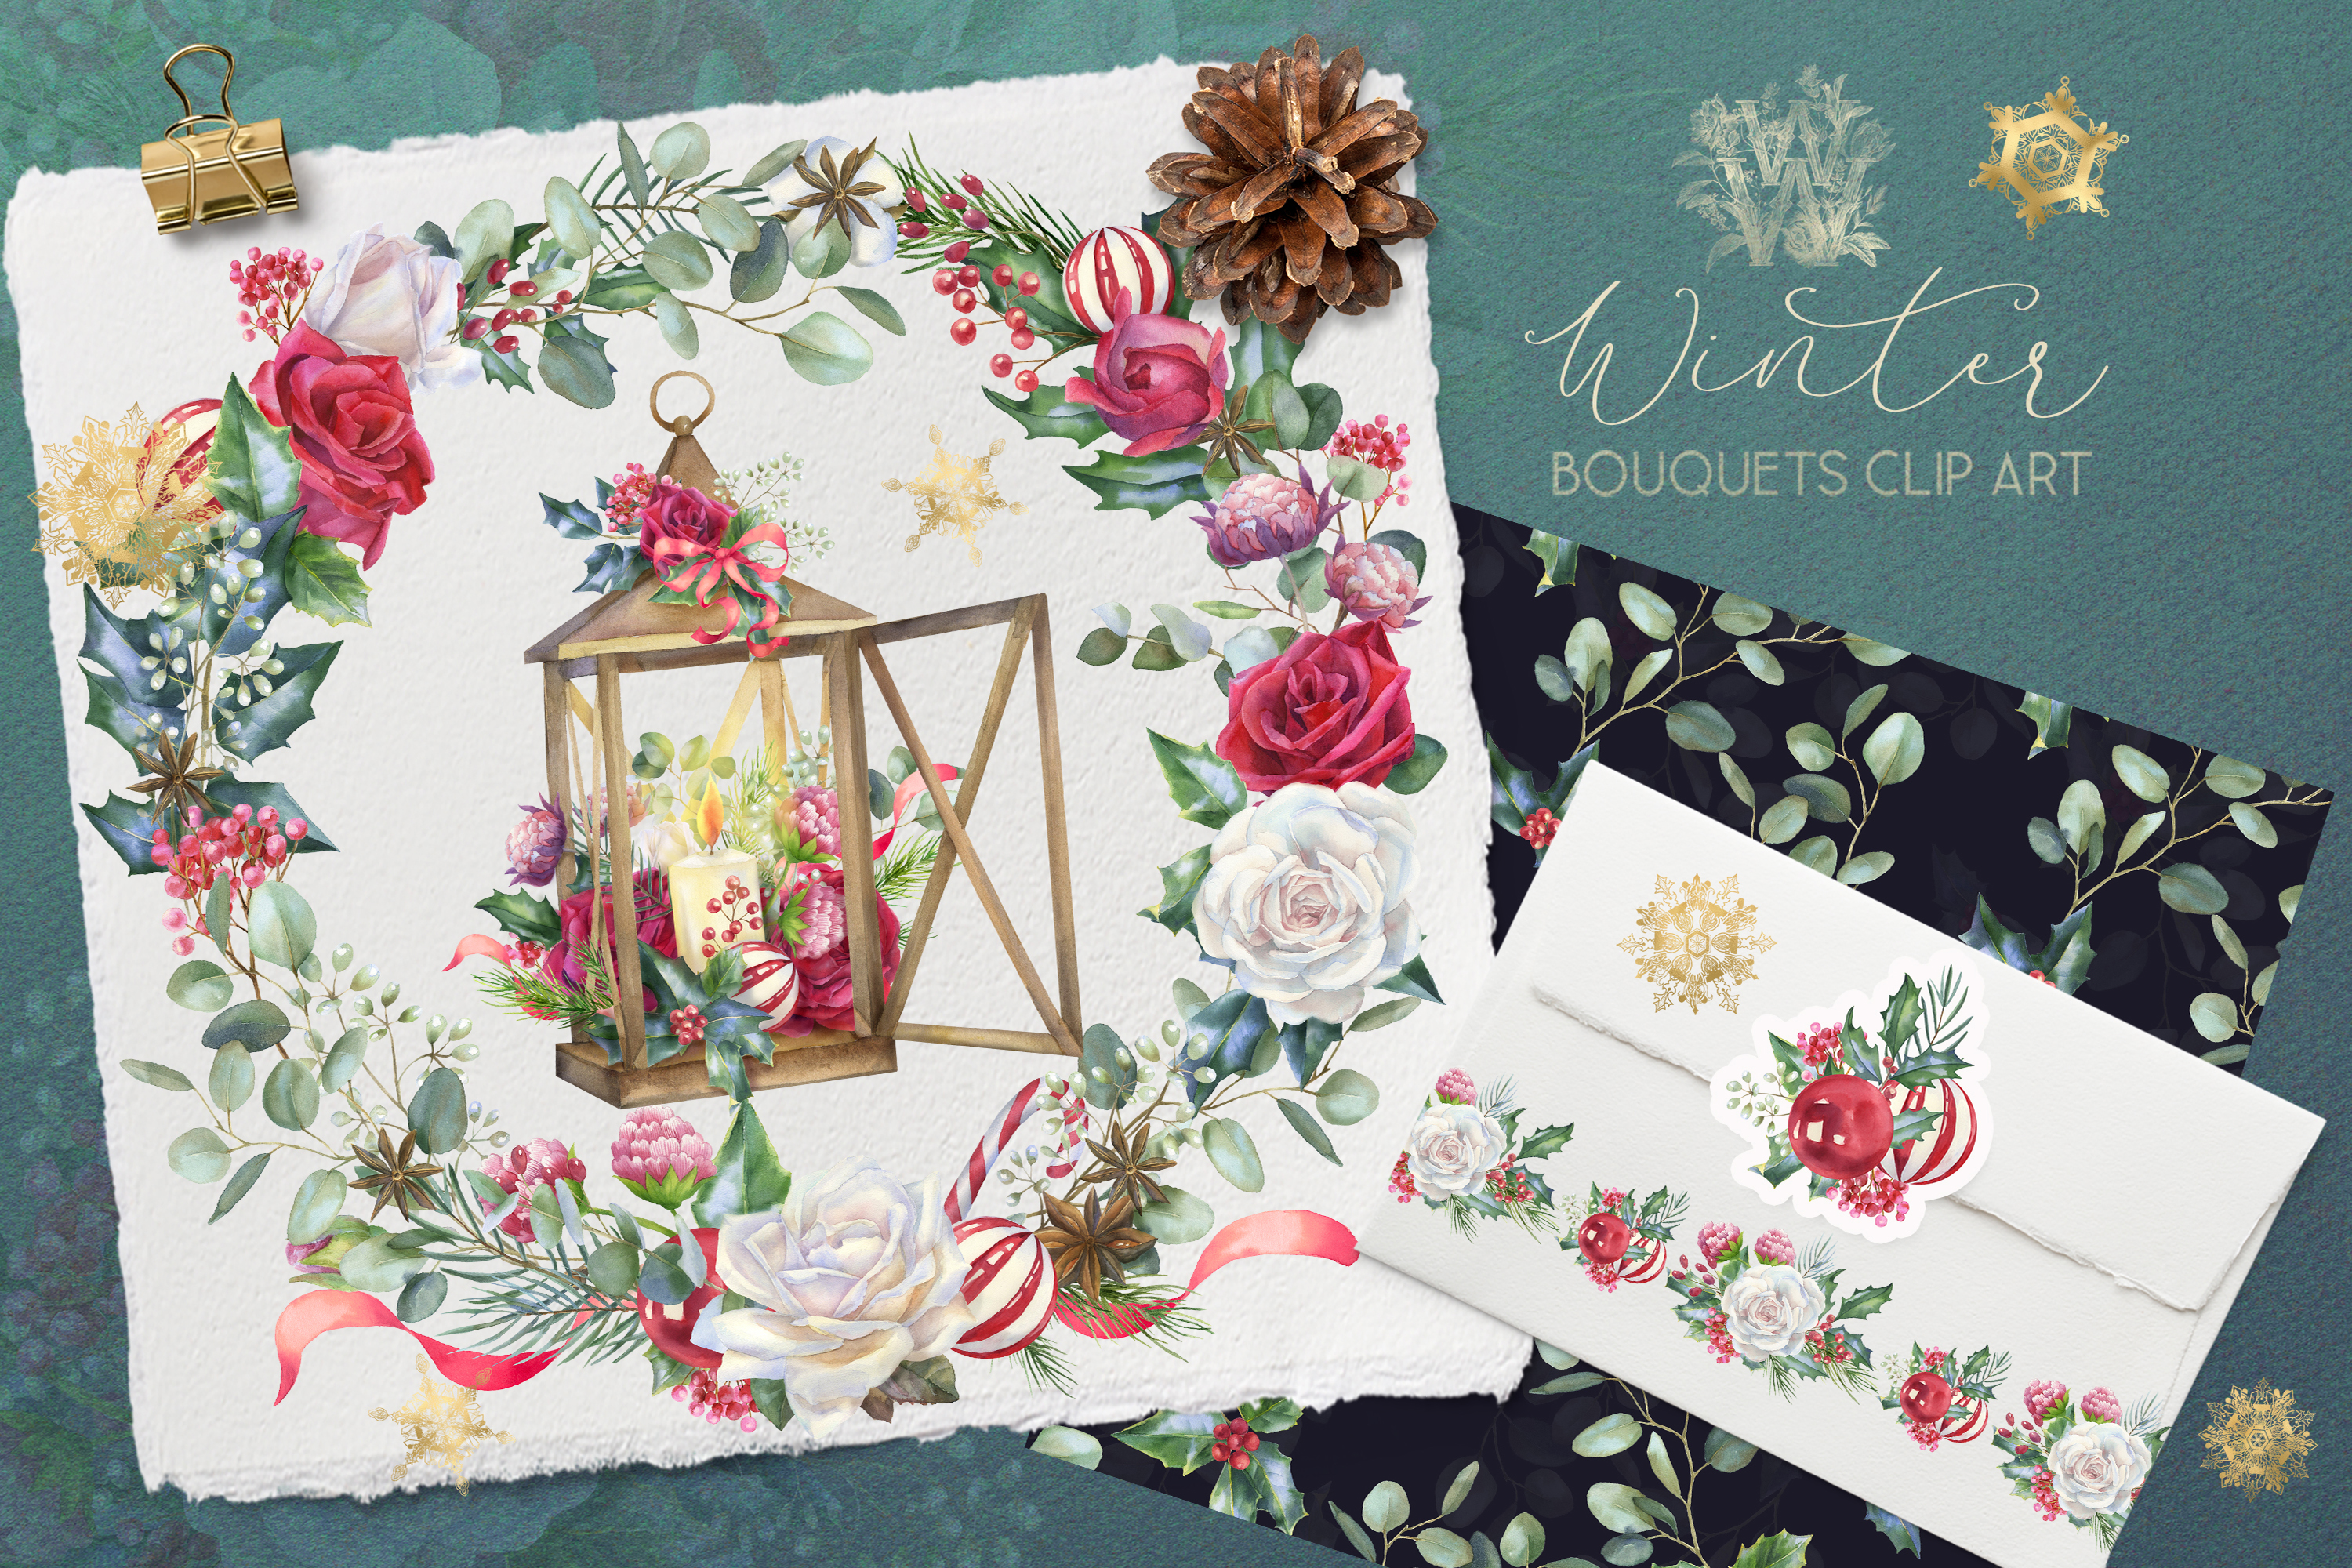 Christmas floral border clipart, Watercolor winter frame example image 1